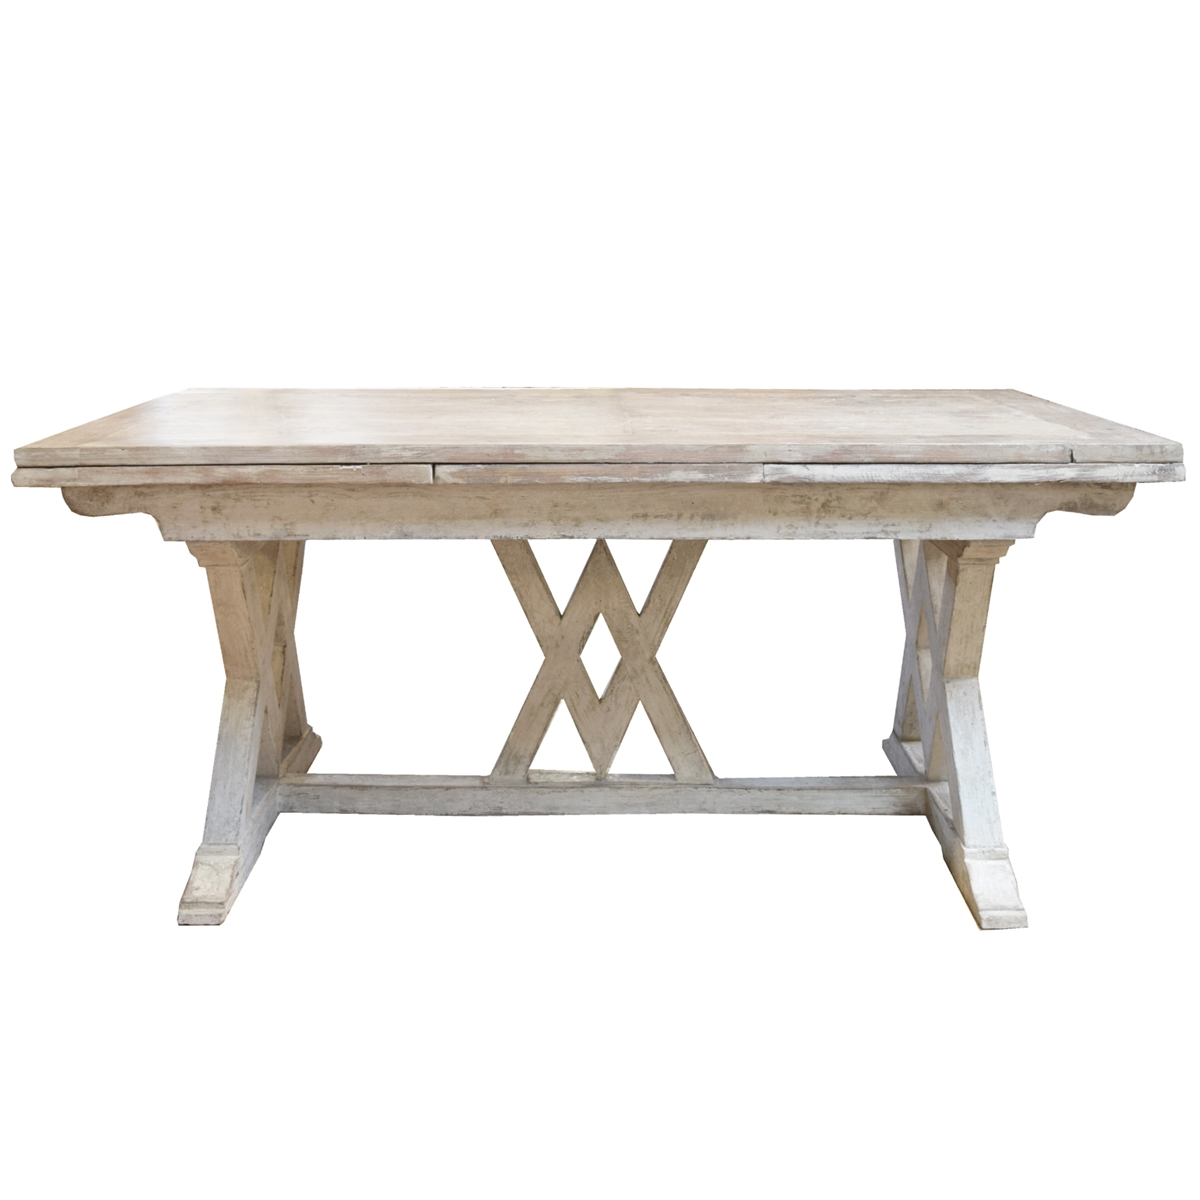 Amazing Italian Trestle Table With Extensions Download Free Architecture Designs Scobabritishbridgeorg